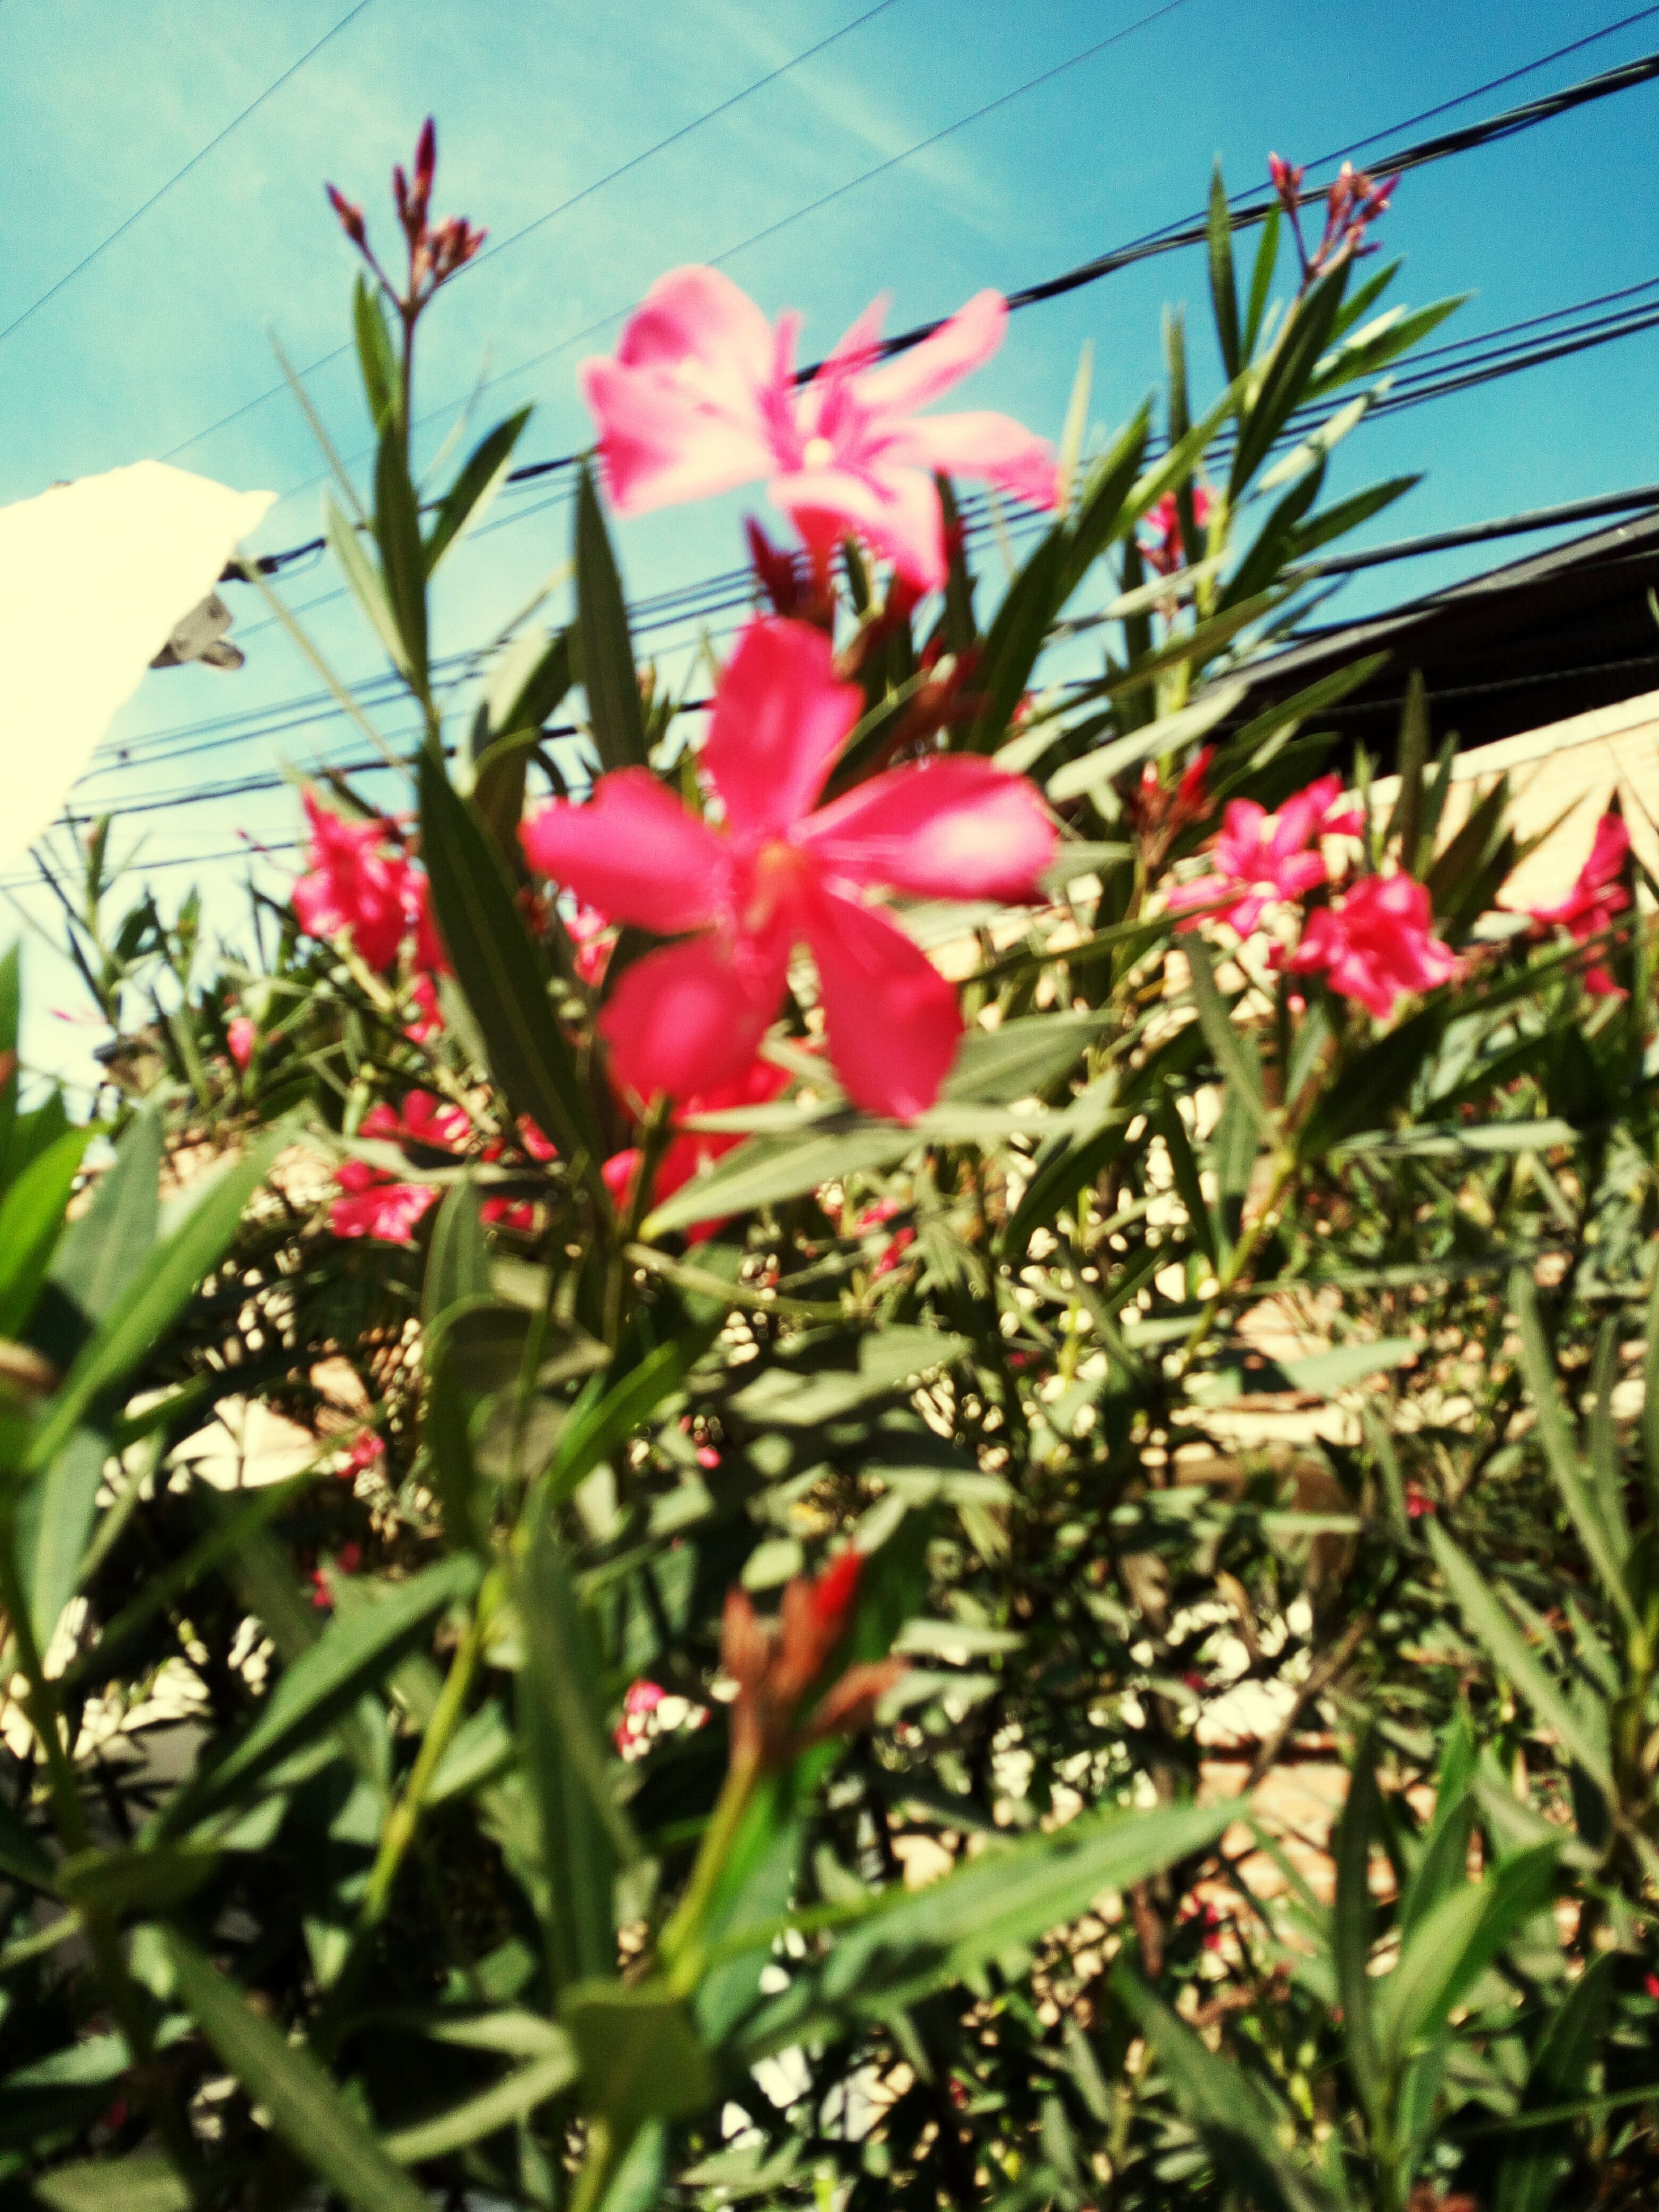 growth, flower, petal, nature, day, pink color, plant, beauty in nature, blooming, low angle view, no people, fragility, outdoors, green color, freshness, flower head, close-up, periwinkle